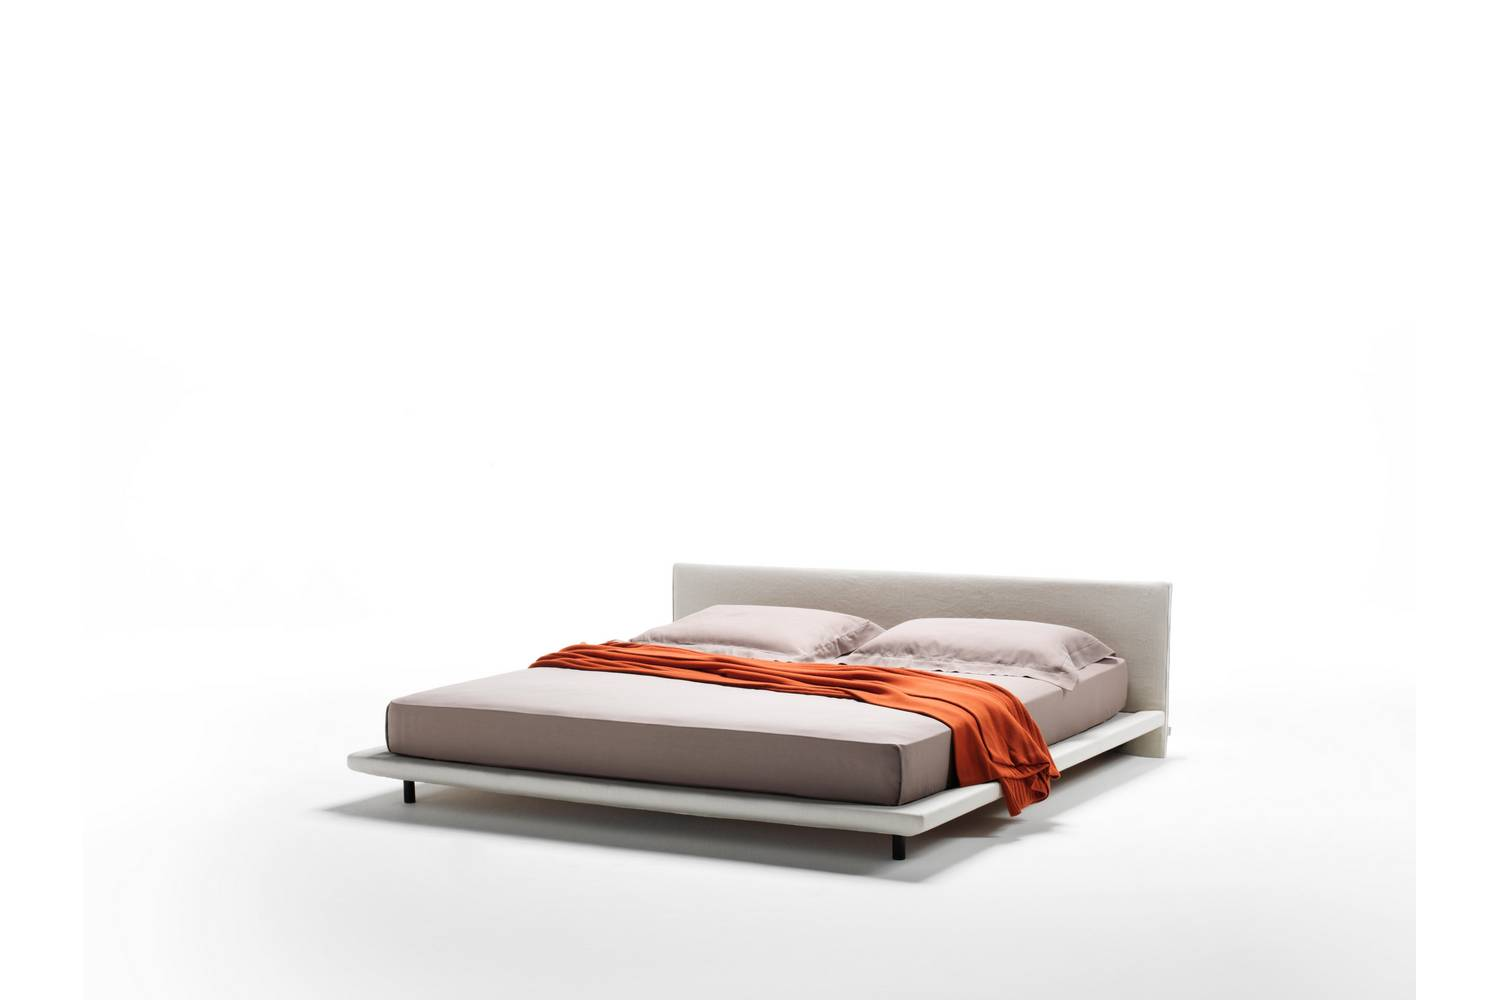 Divani Definition Chemise Bed By Piero Lissoni For Living Divani Space Furniture